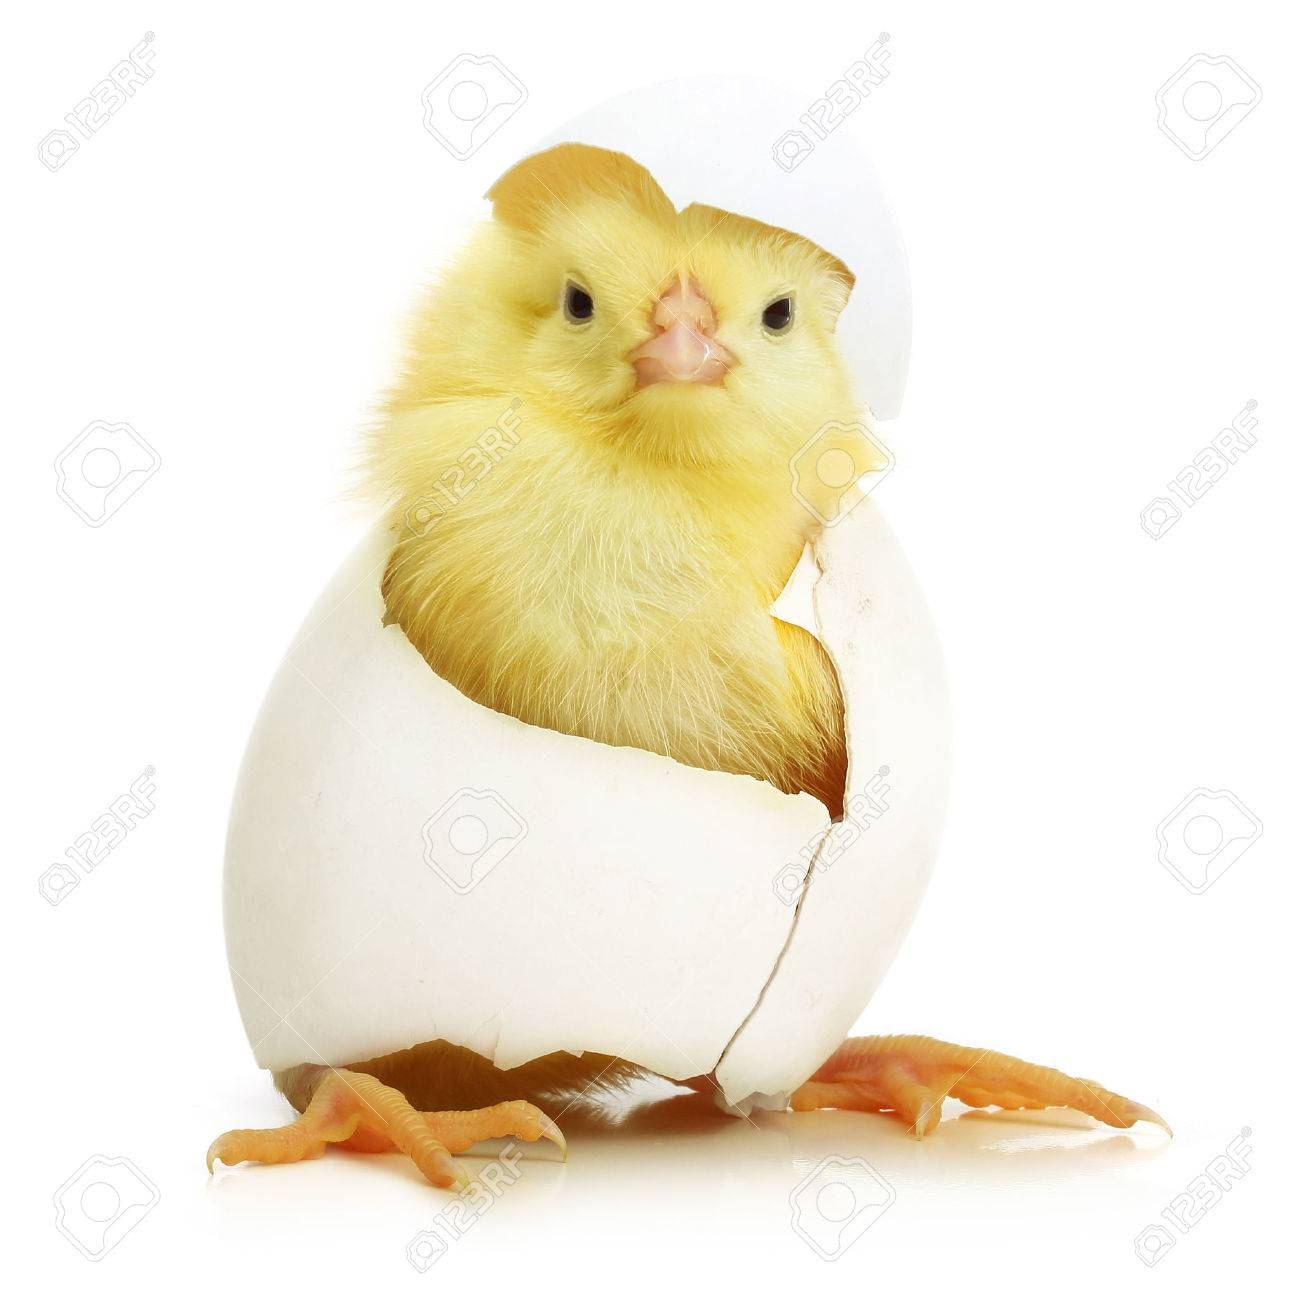 cute little chicken coming out of a white egg isolated on white